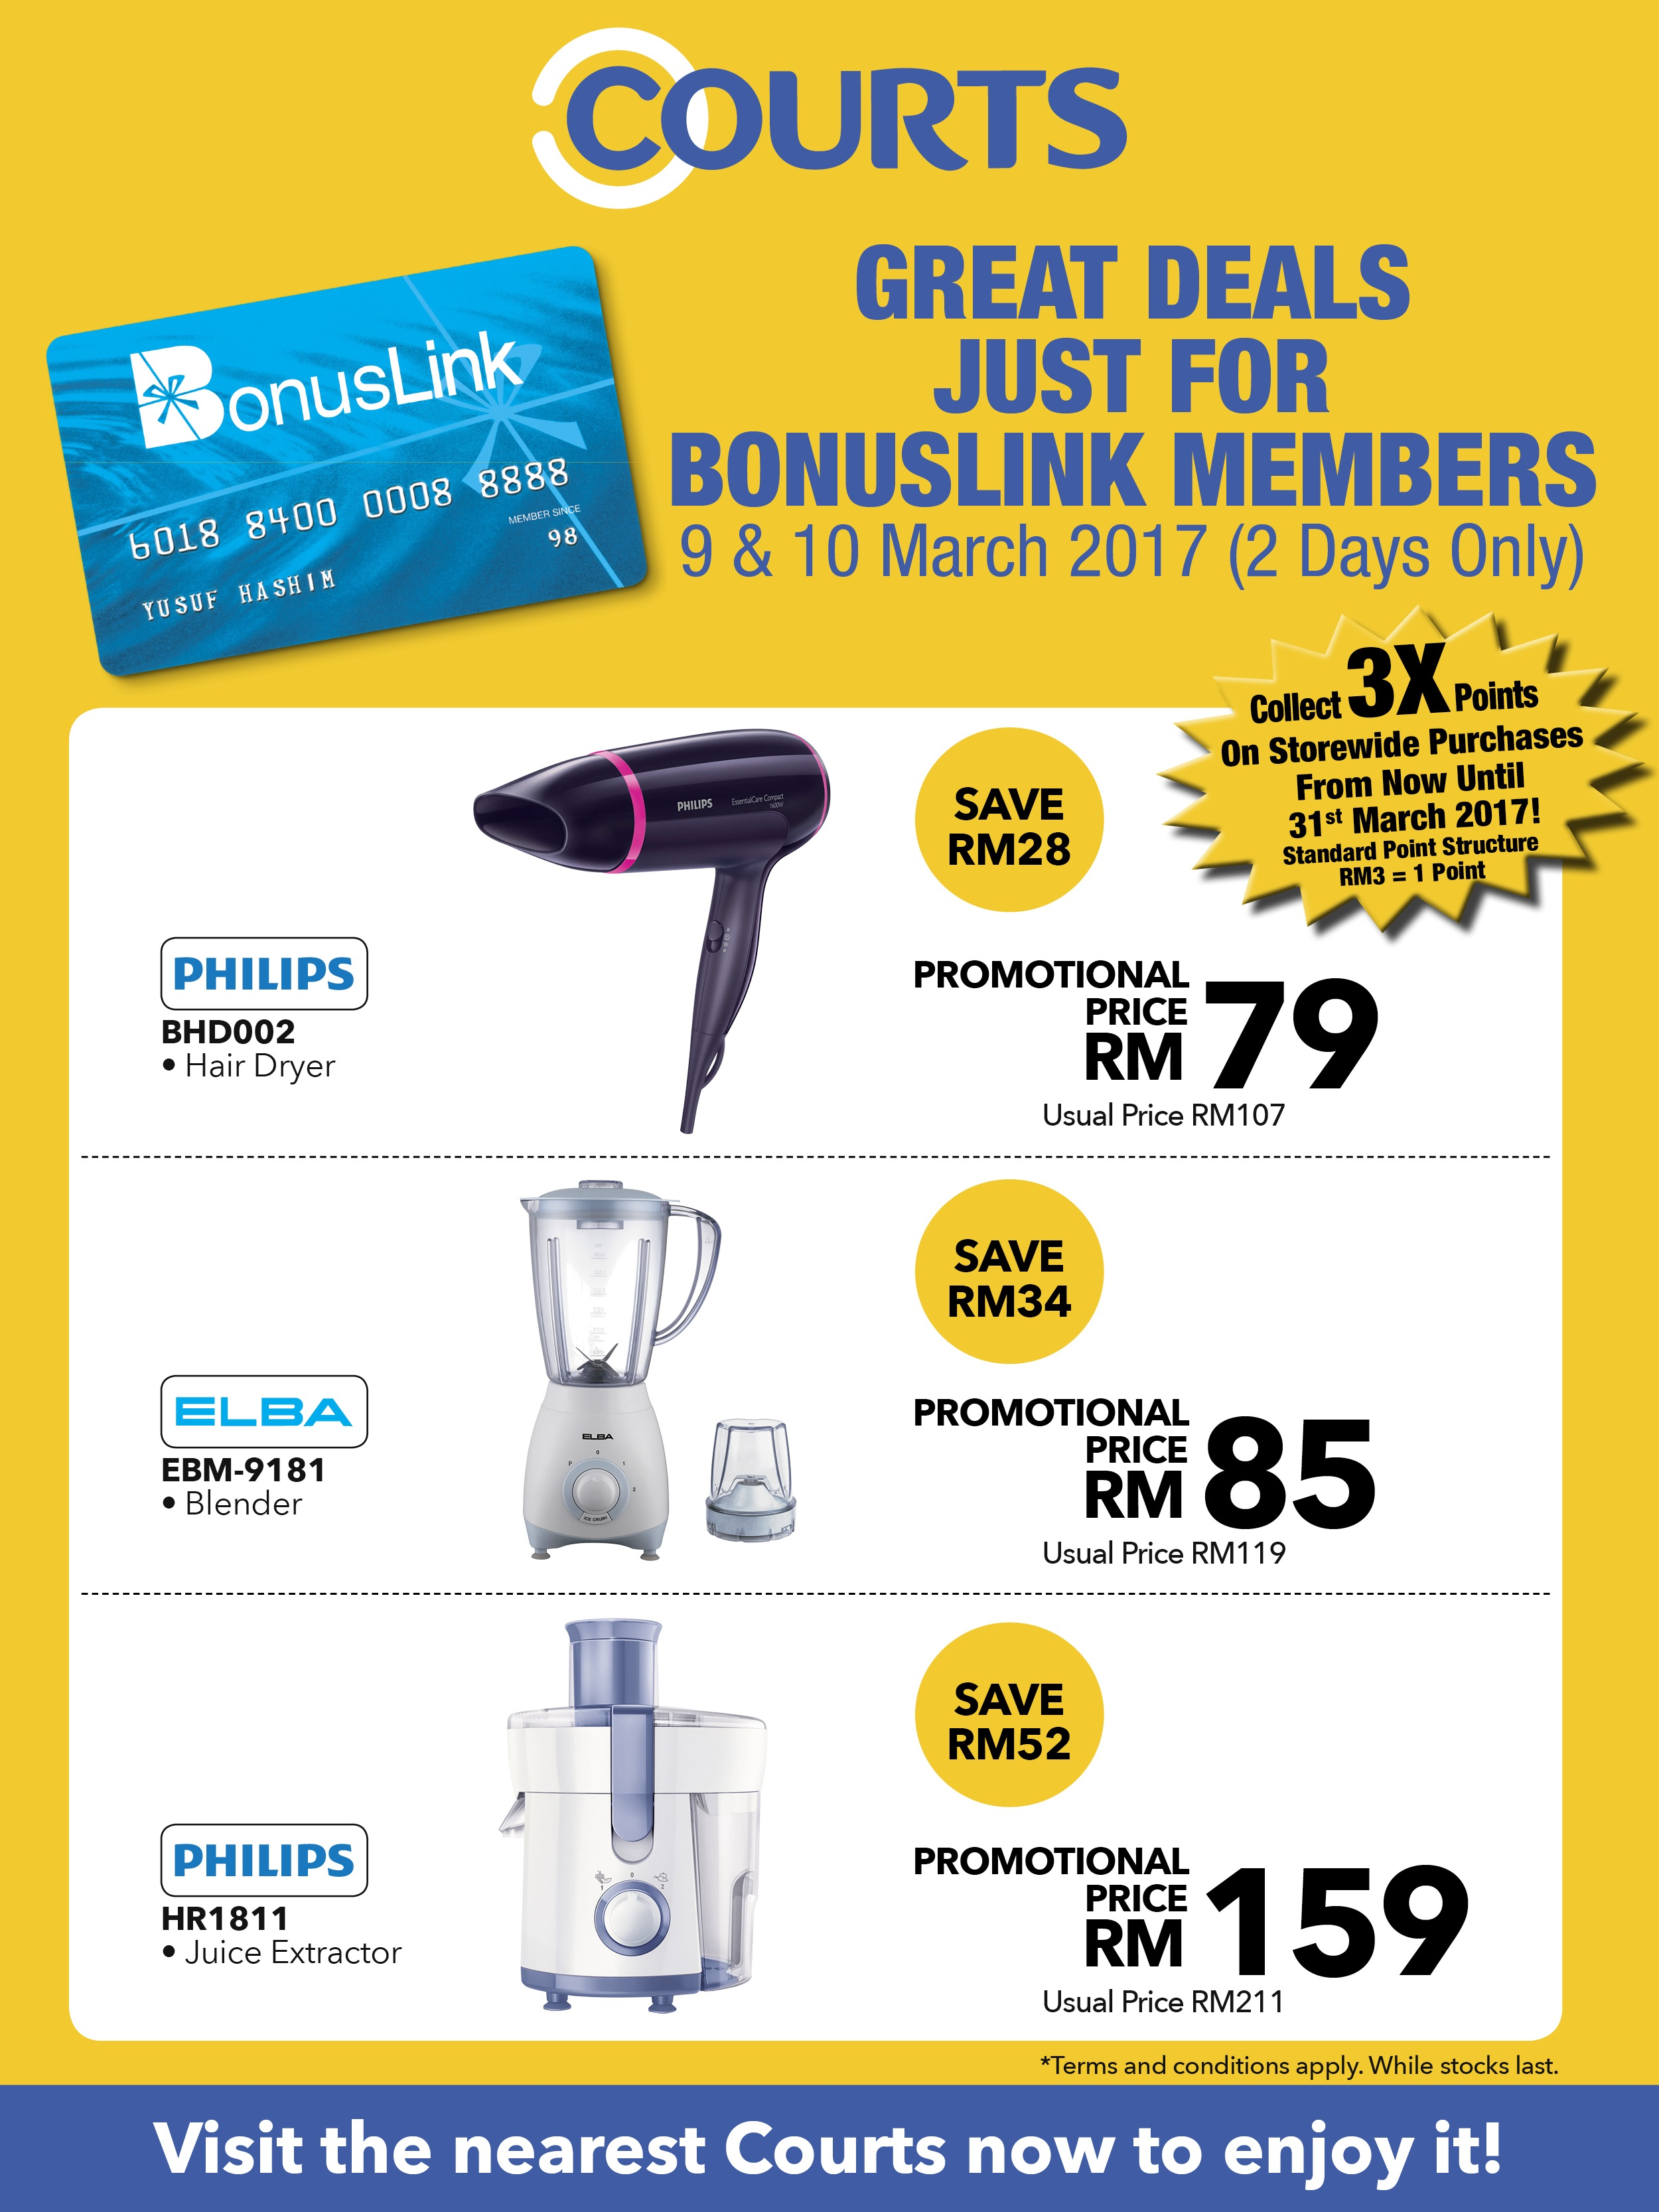 Highlights Bonuslink Philips Juicer Extractor Hr1811 Great Deals From Courts